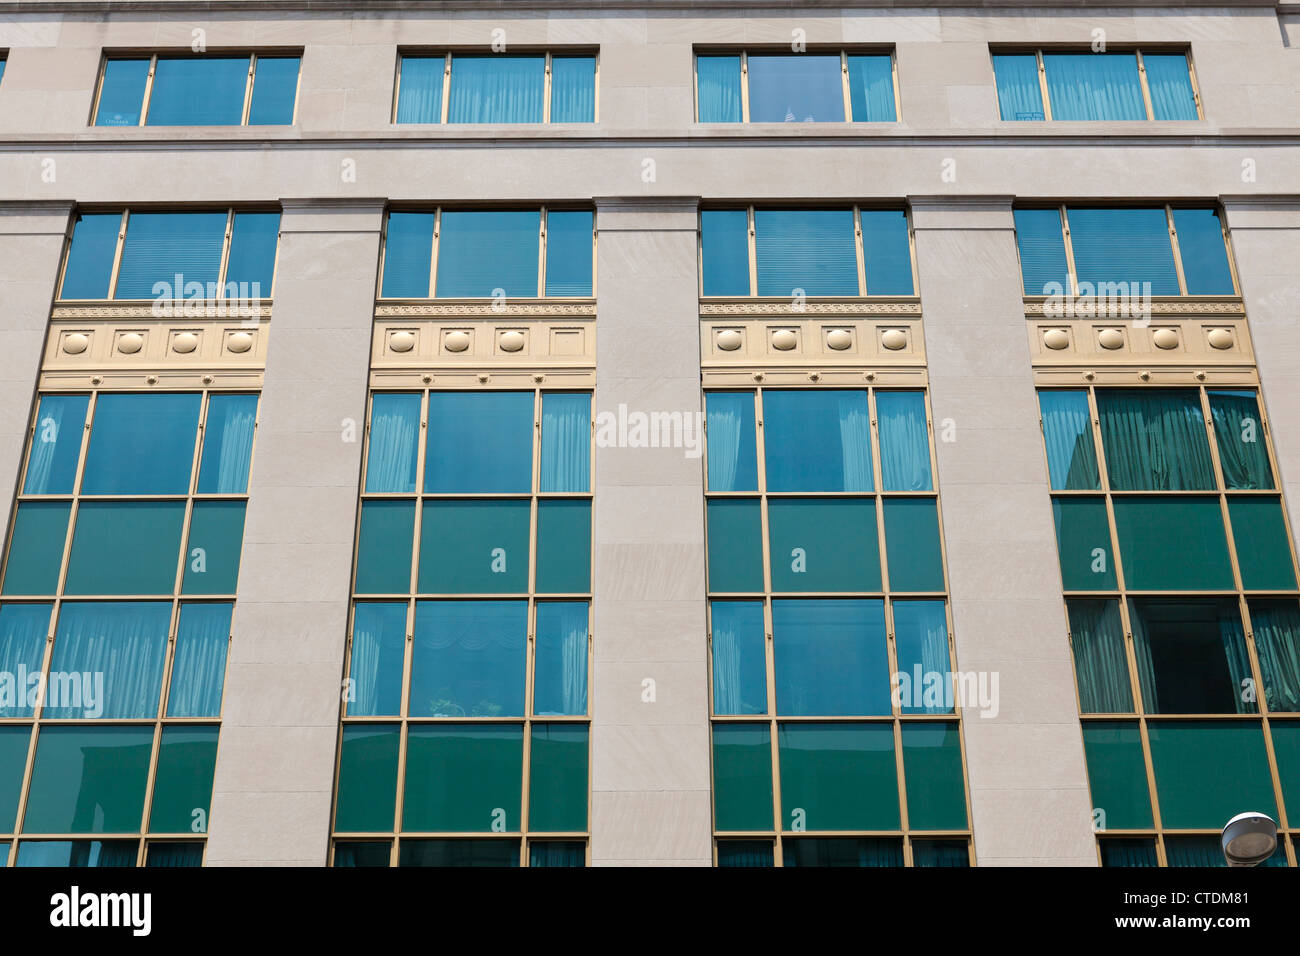 Retro Buro Gebaude Windows Stockfoto Bild 49473761 Alamy